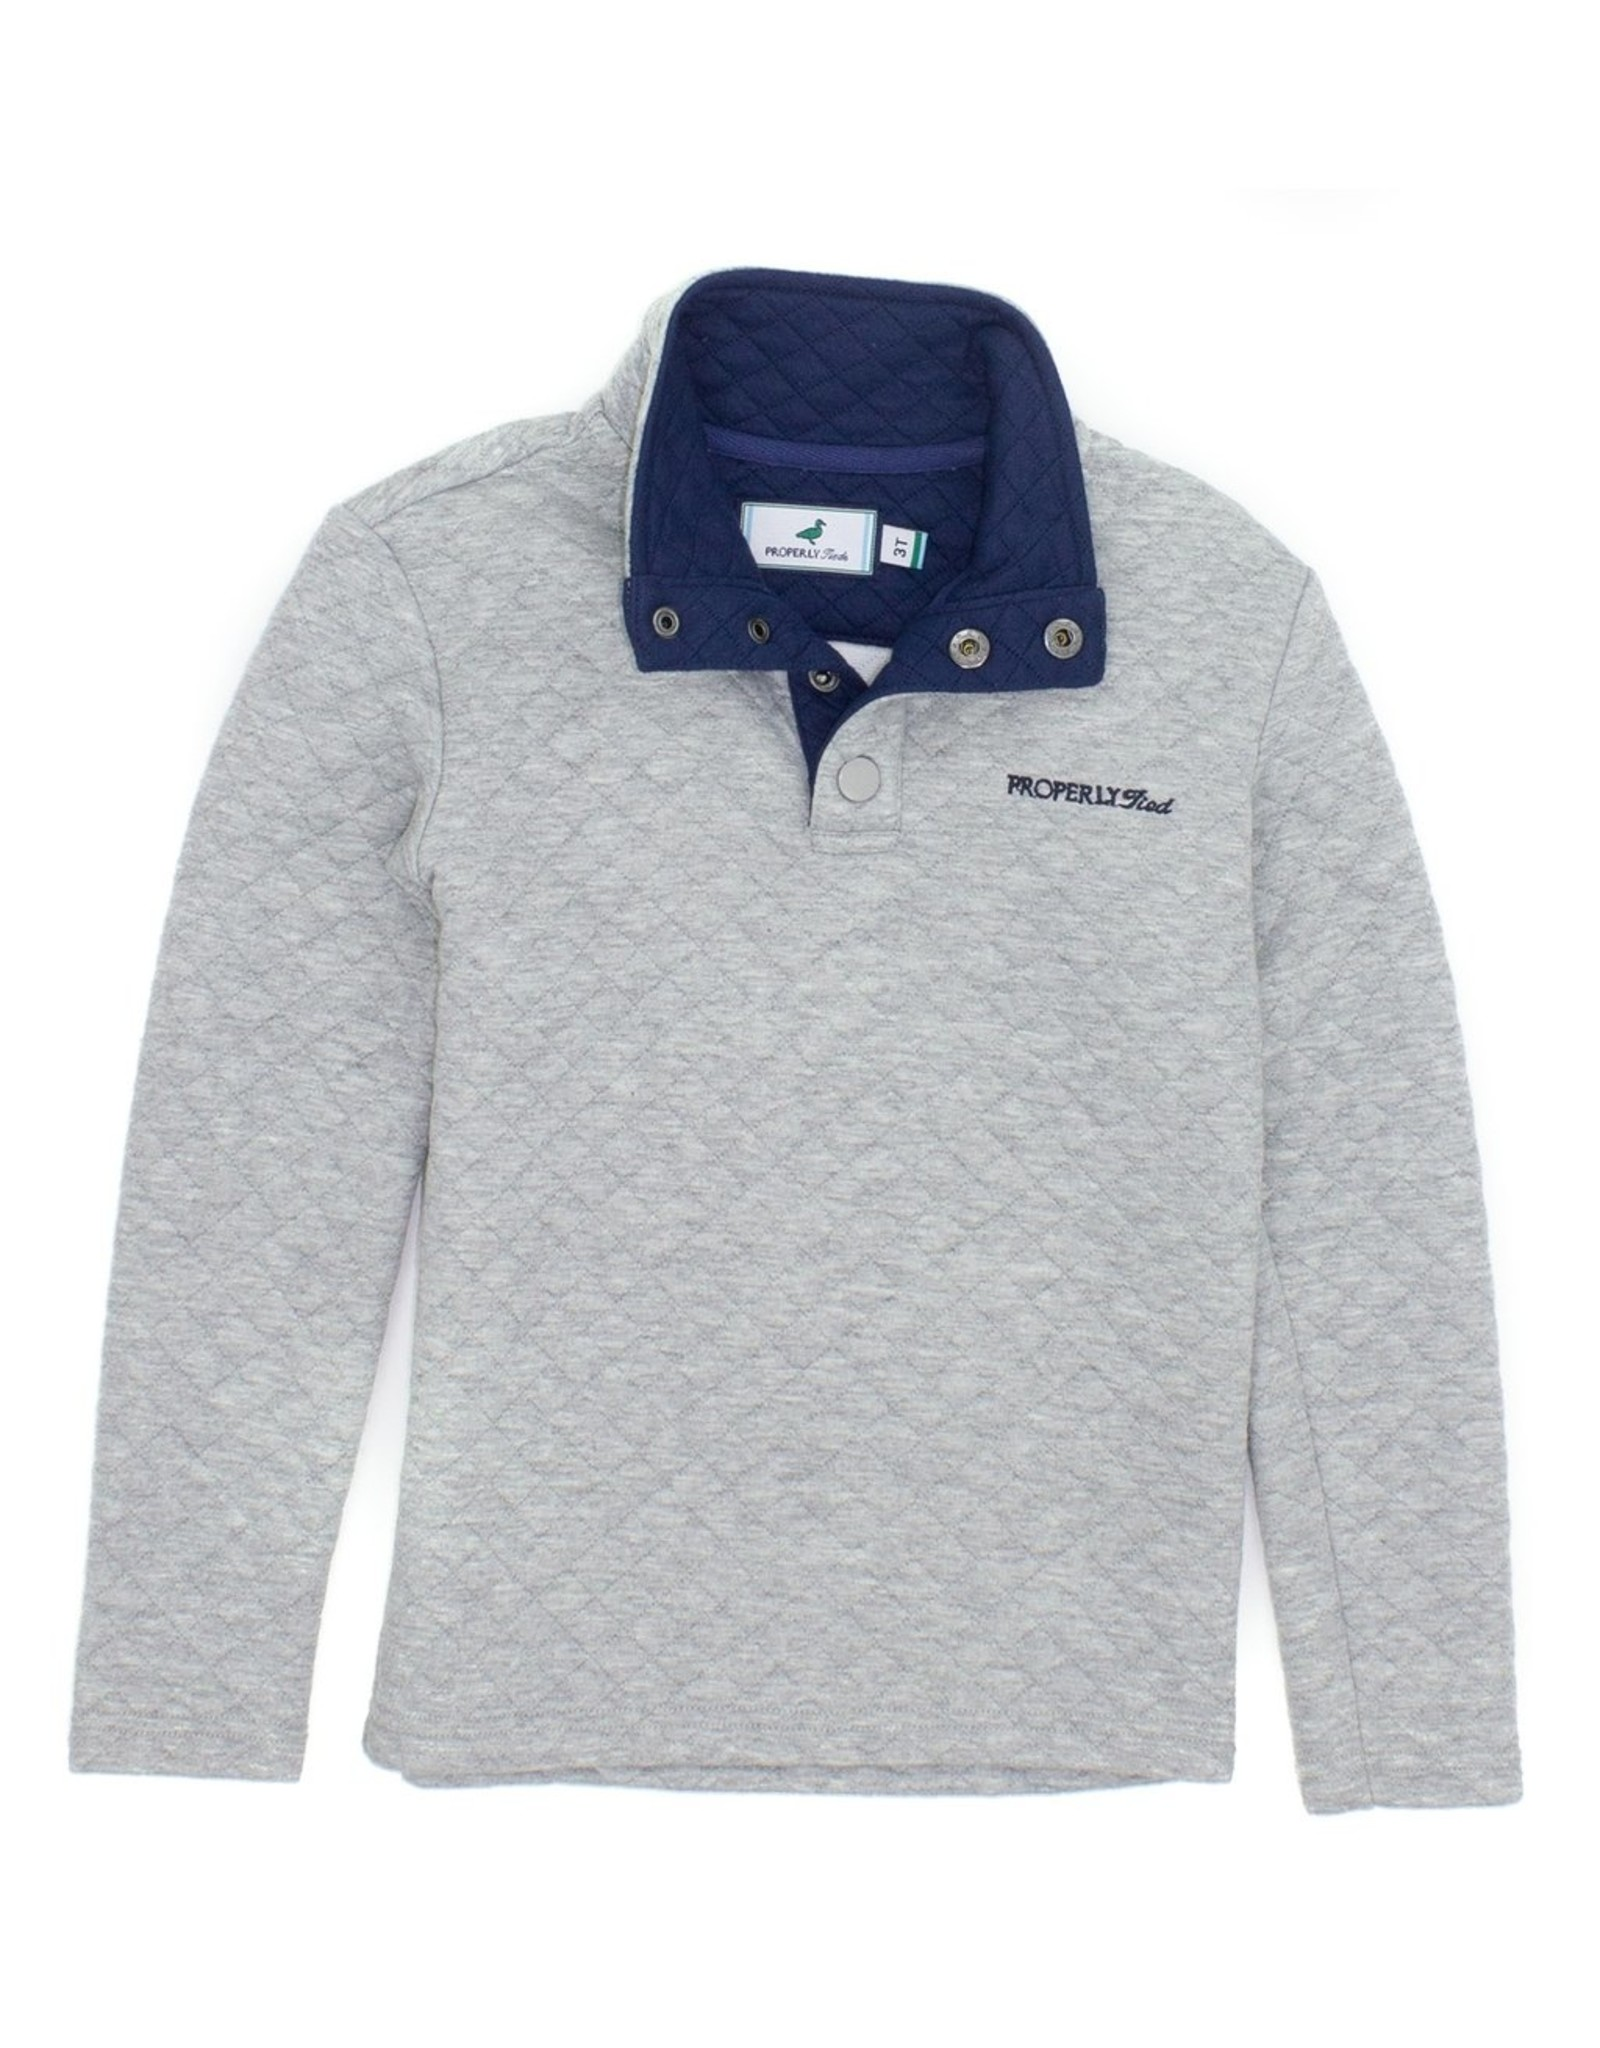 Properly Tied Club Pullover